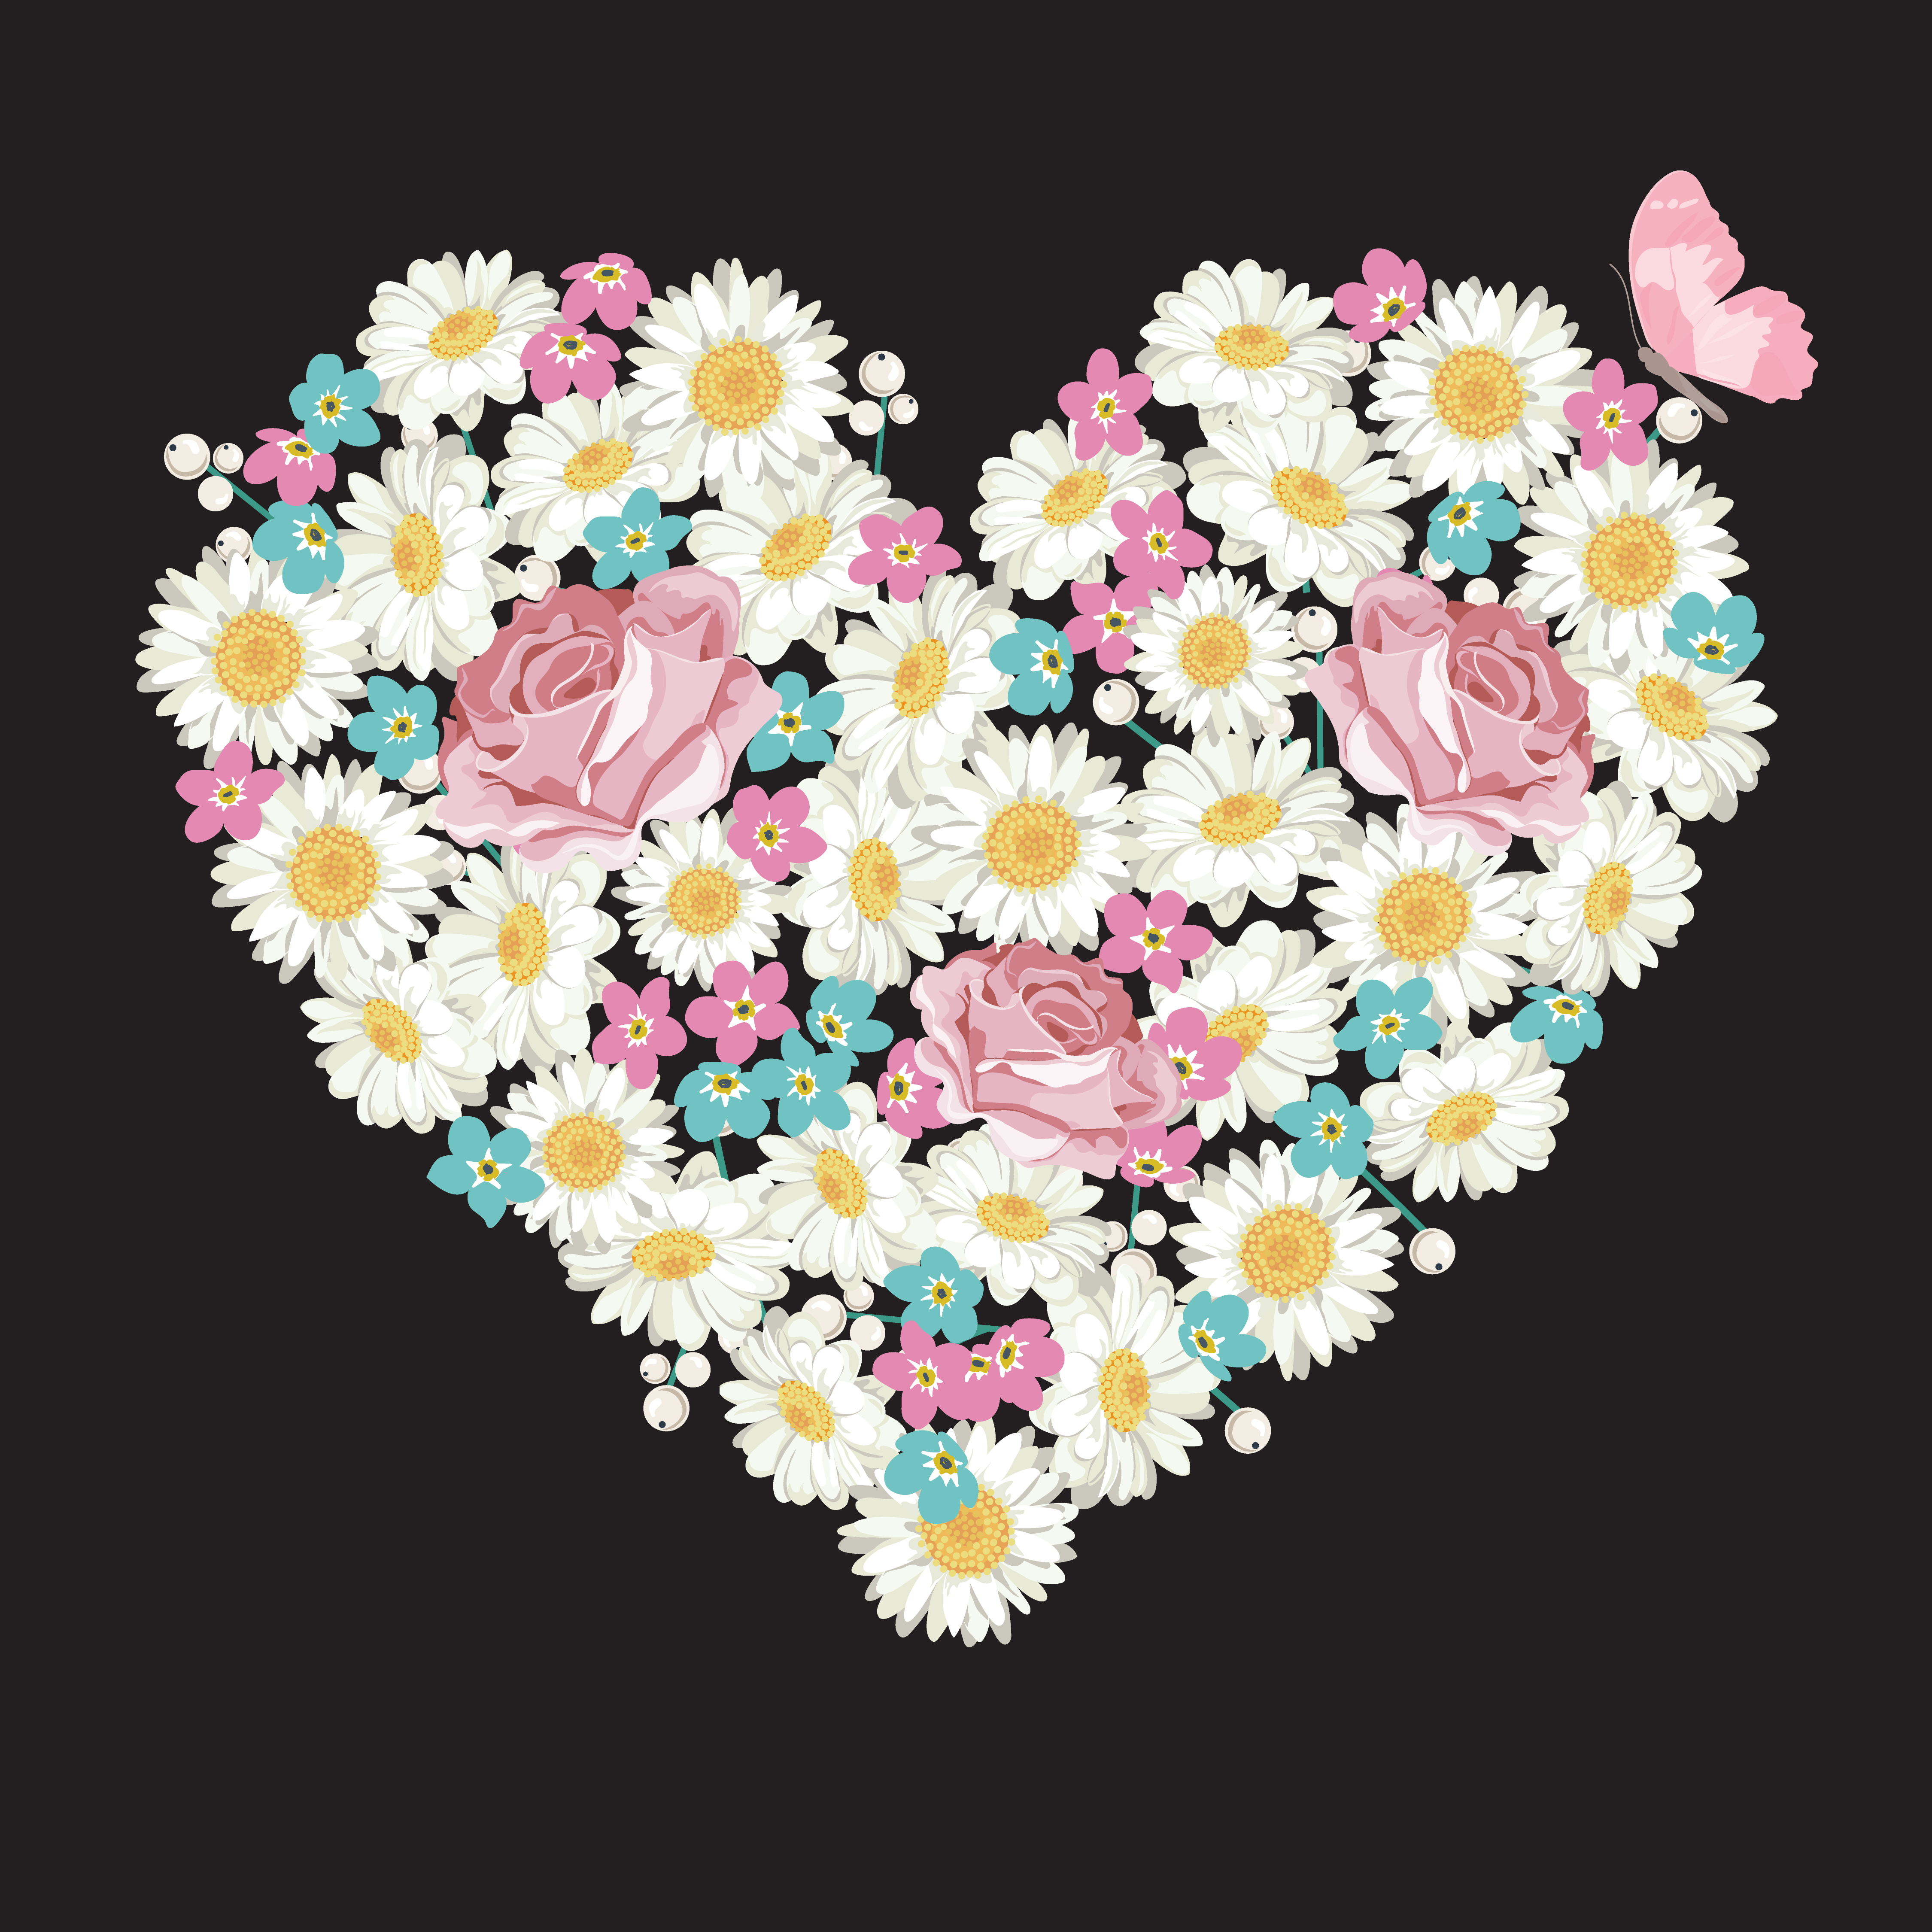 Heart Shape Roses Chamomile And Forget Me Not Flowers